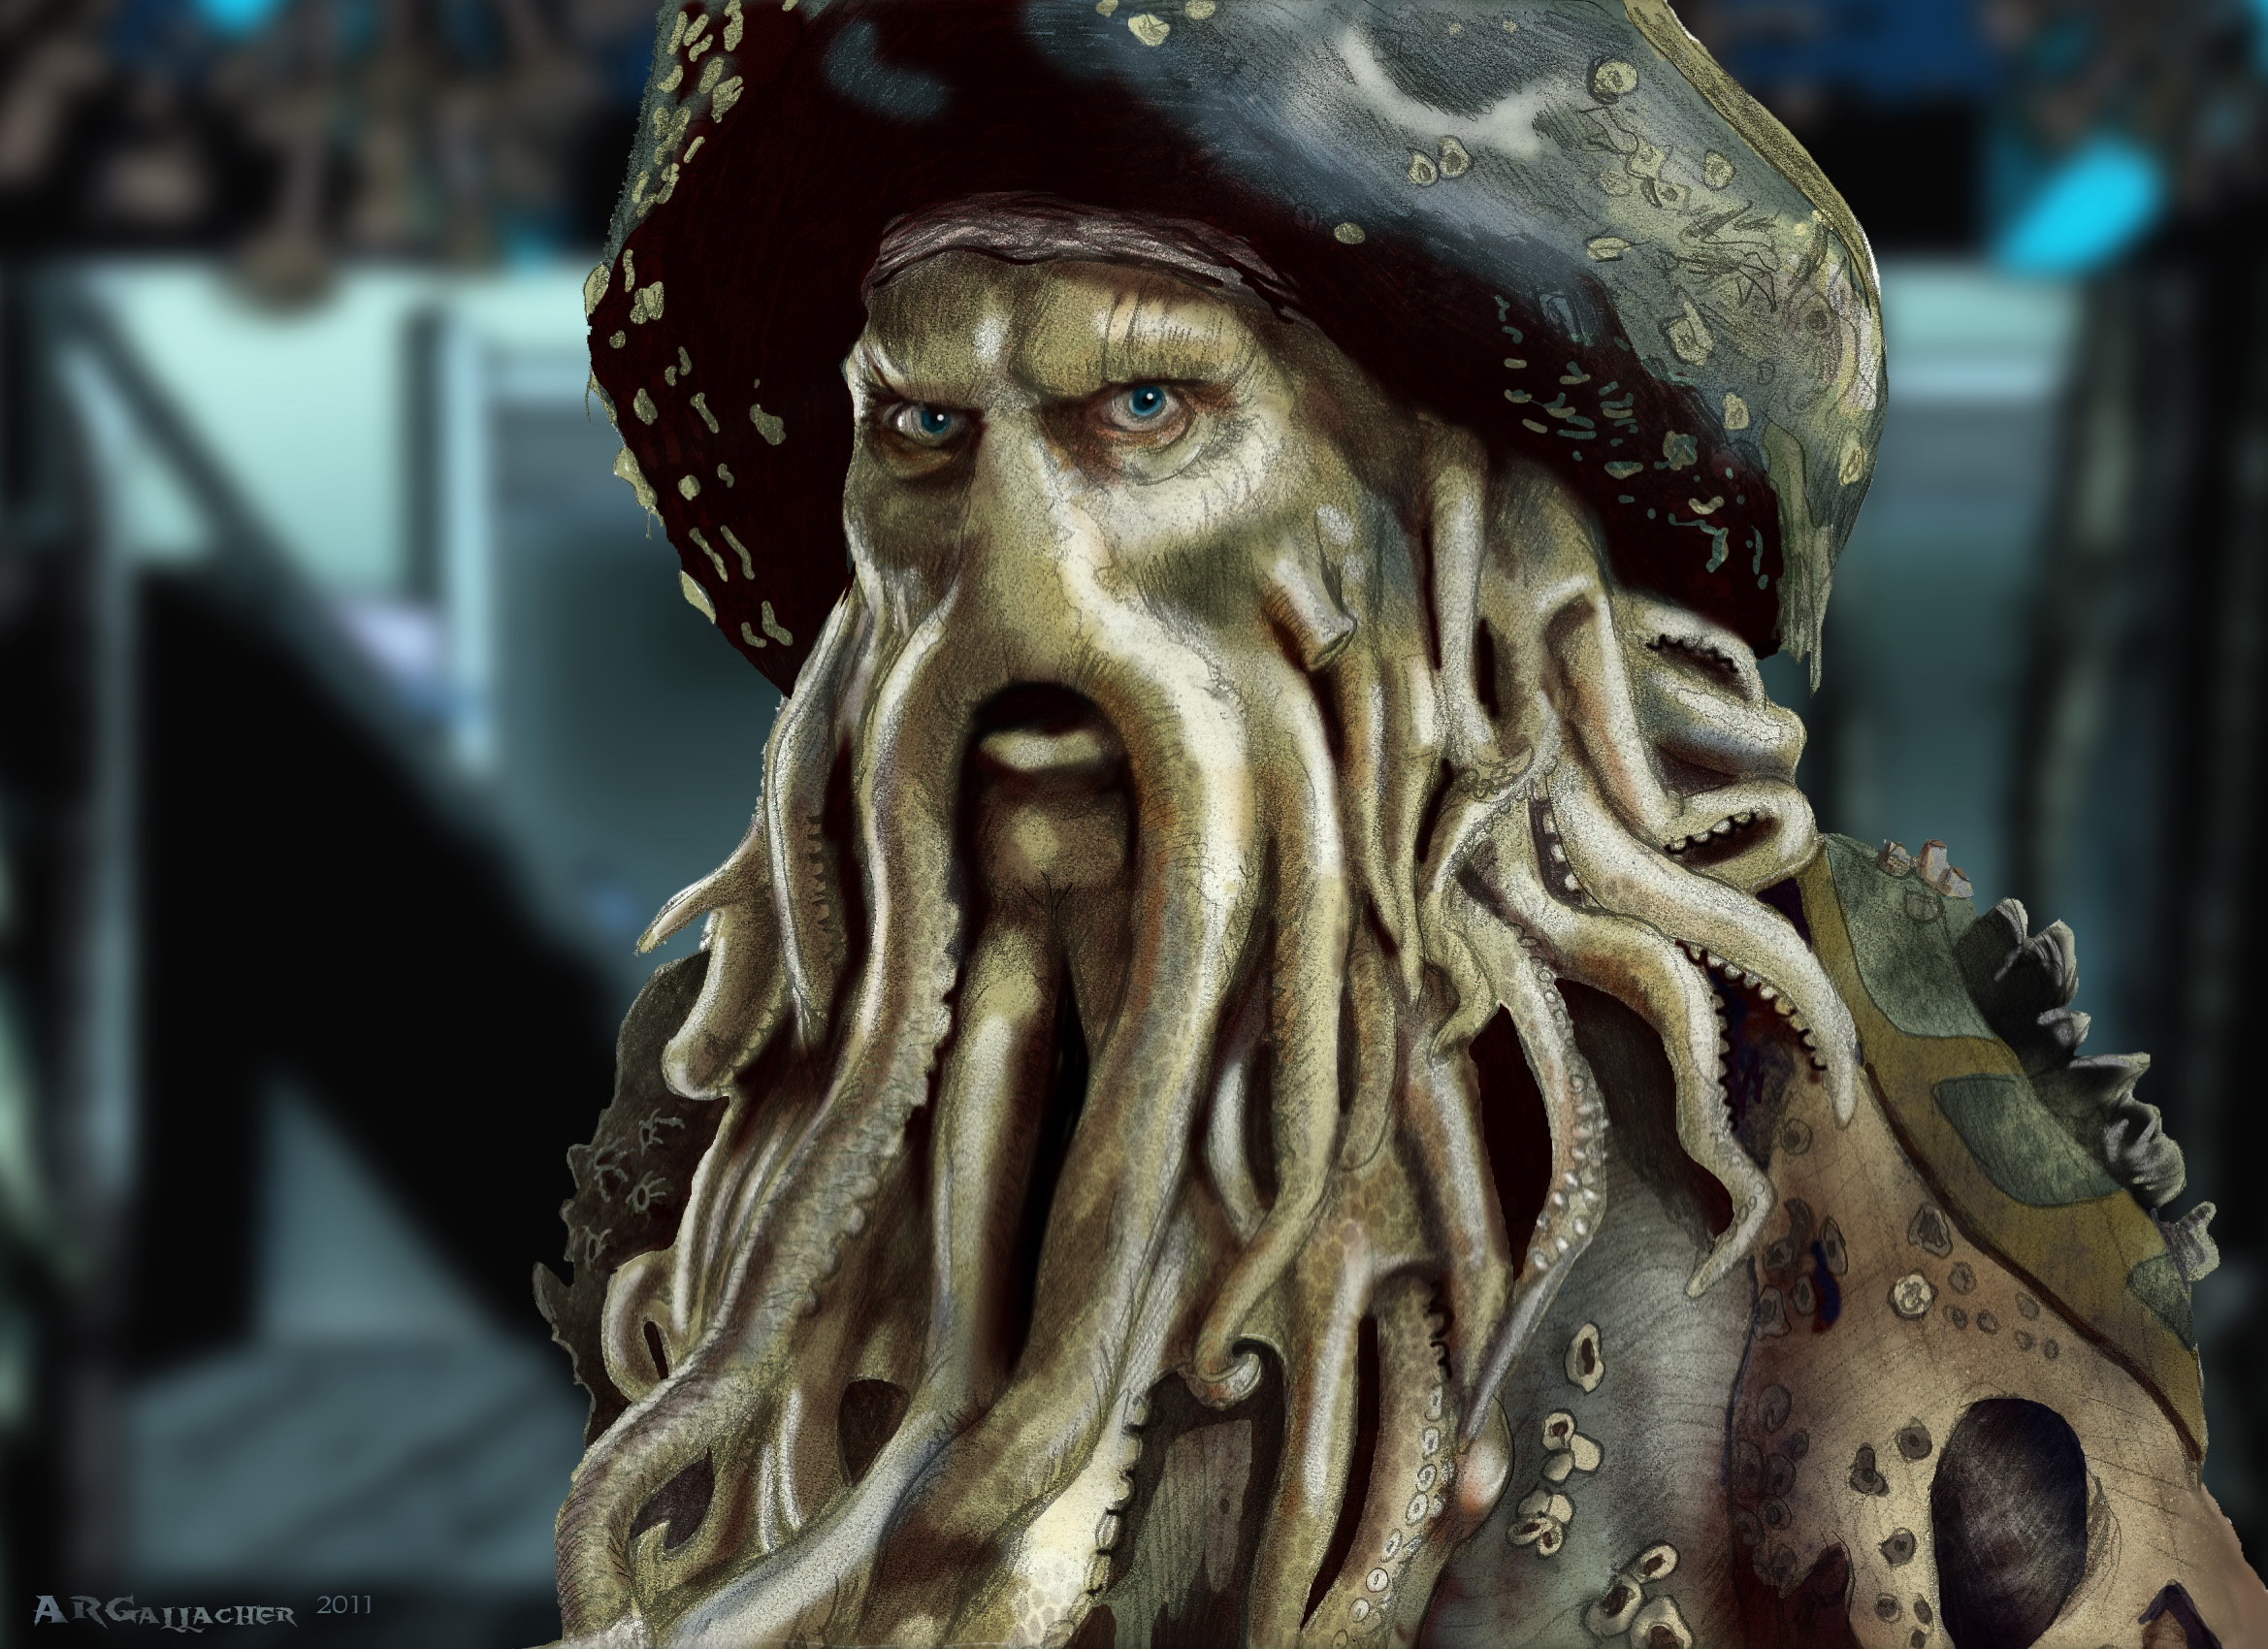 the life and leadership of davy jones in pirates of the caribbean